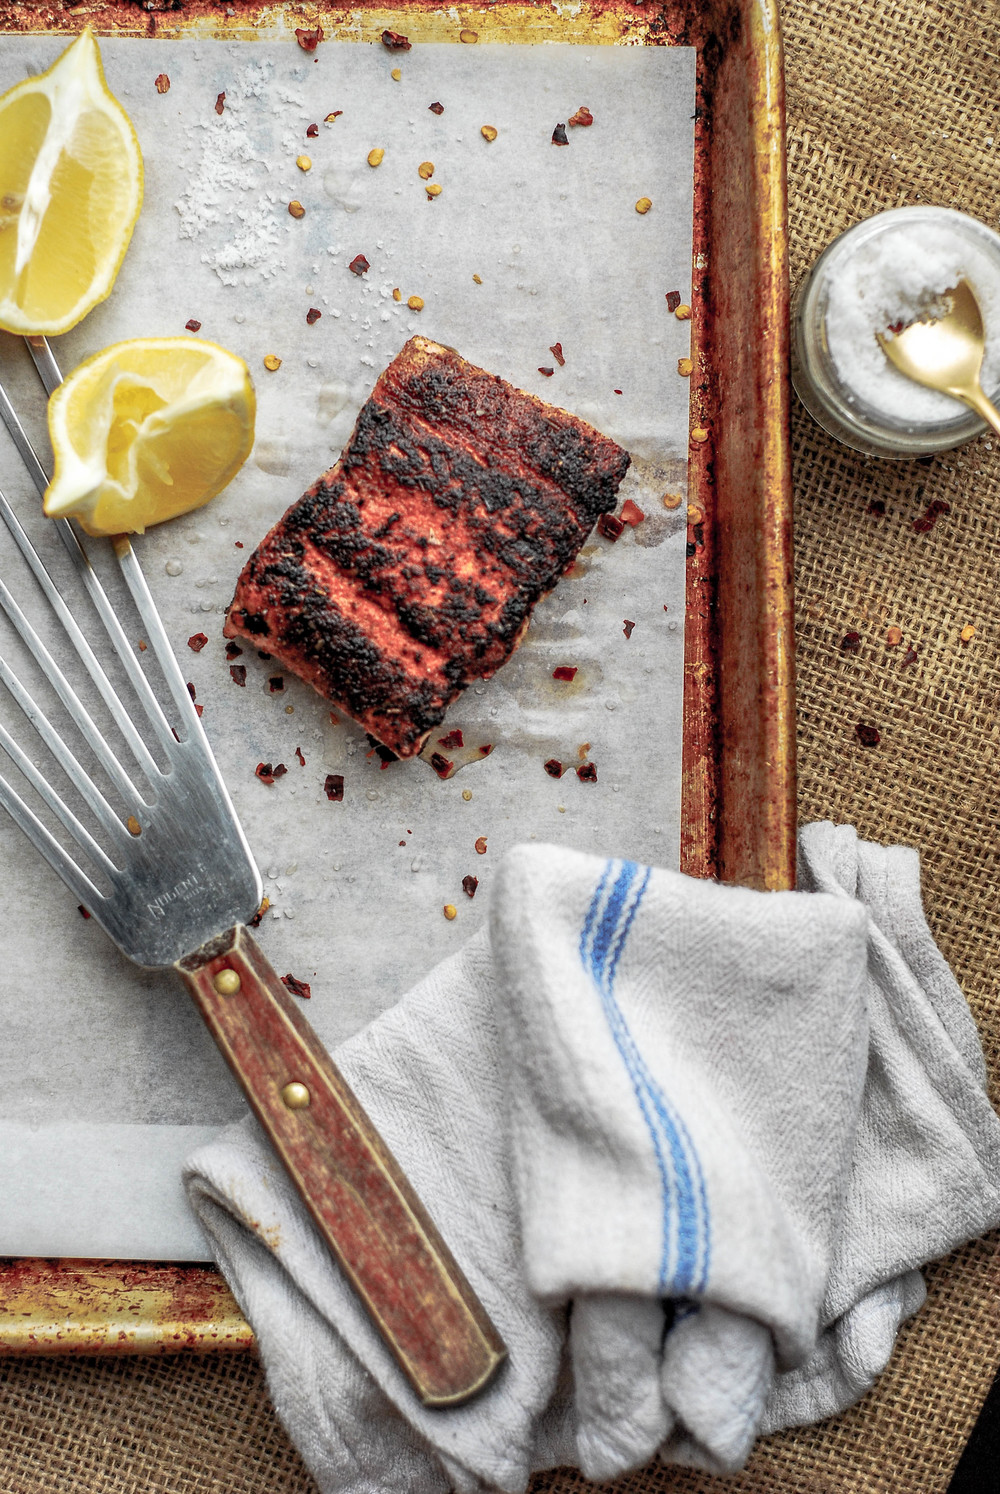 Blackened Salmon. Photo by Jenny Dorsey.